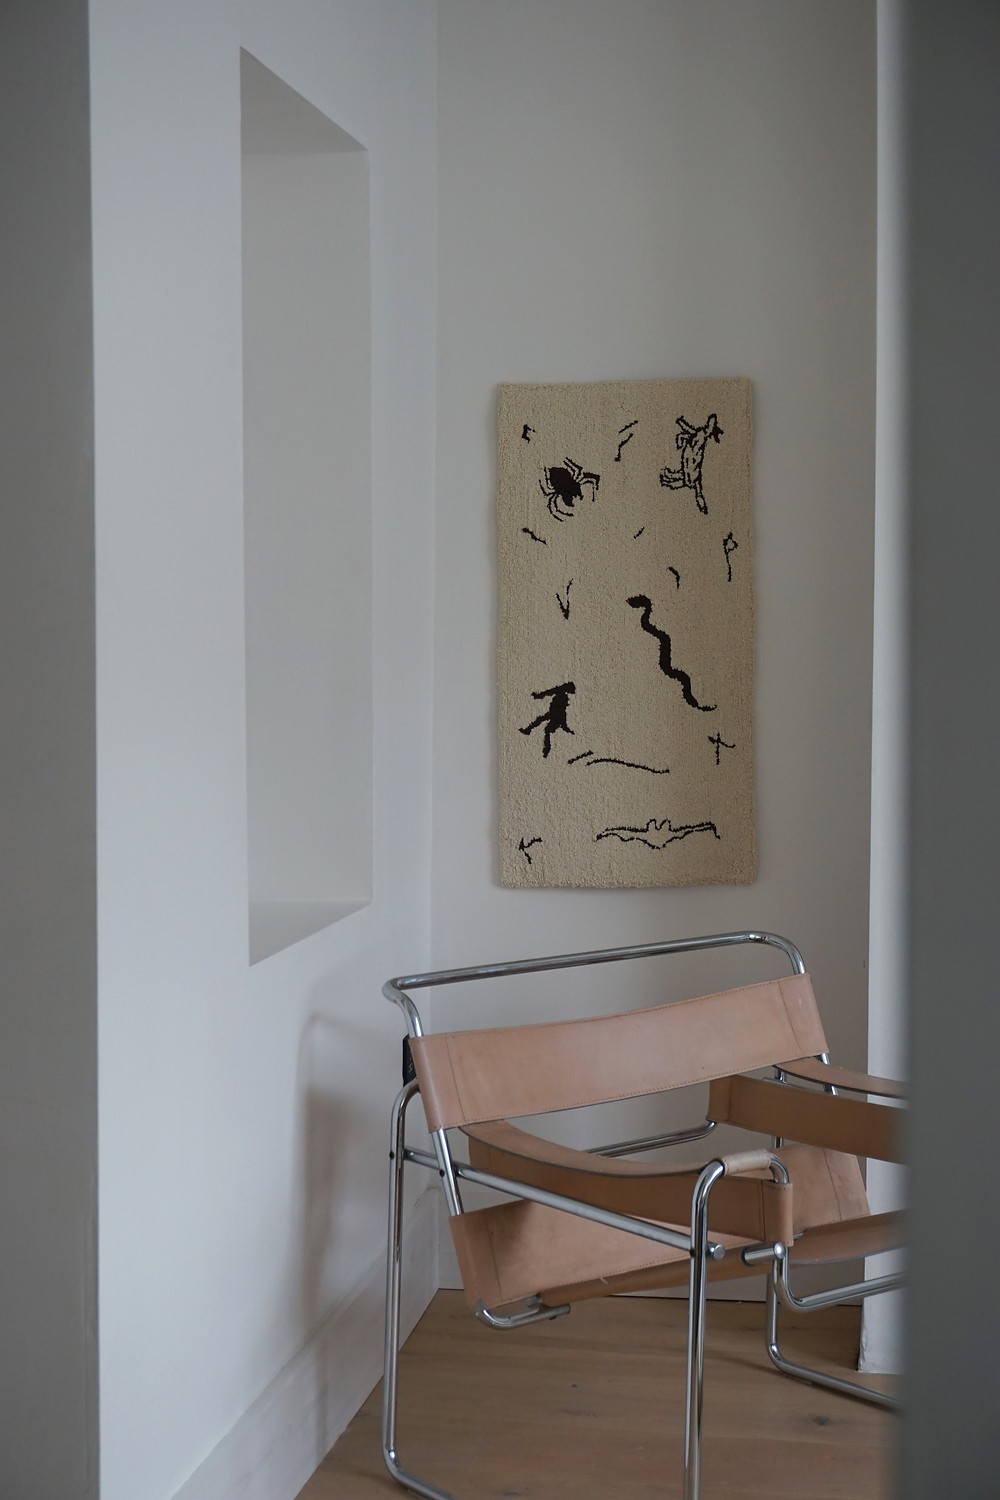 Walling hanging handmade tapis featuing a man, a bat, a bug, a dog, a fish and a snake